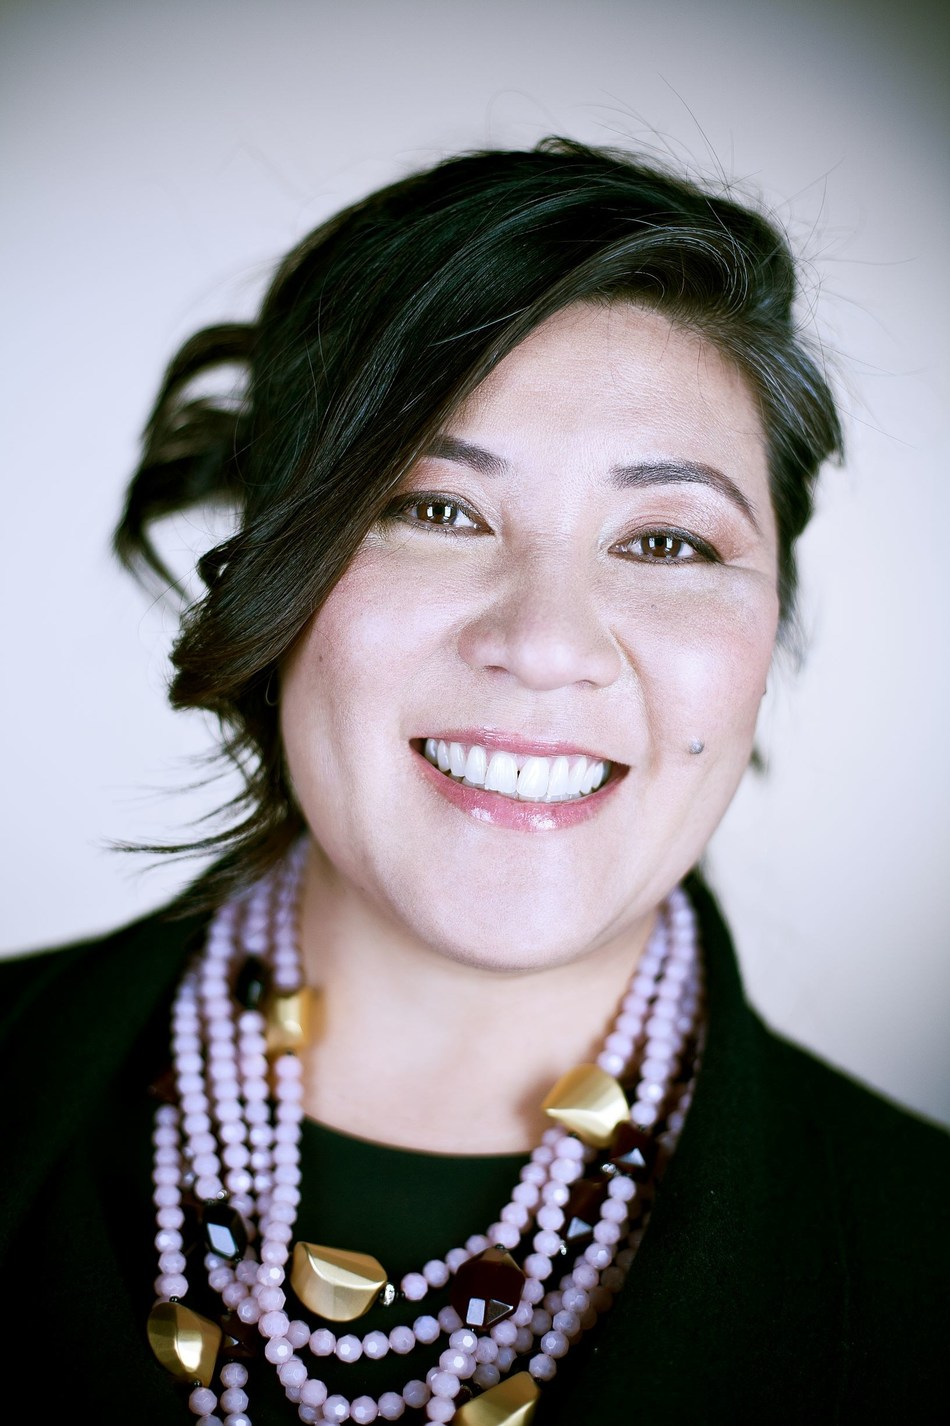 OCAD U announces Ana Serrano as new President and Vice-Chancellor, as of July 1, 2020. (CNW Group/OCAD University)